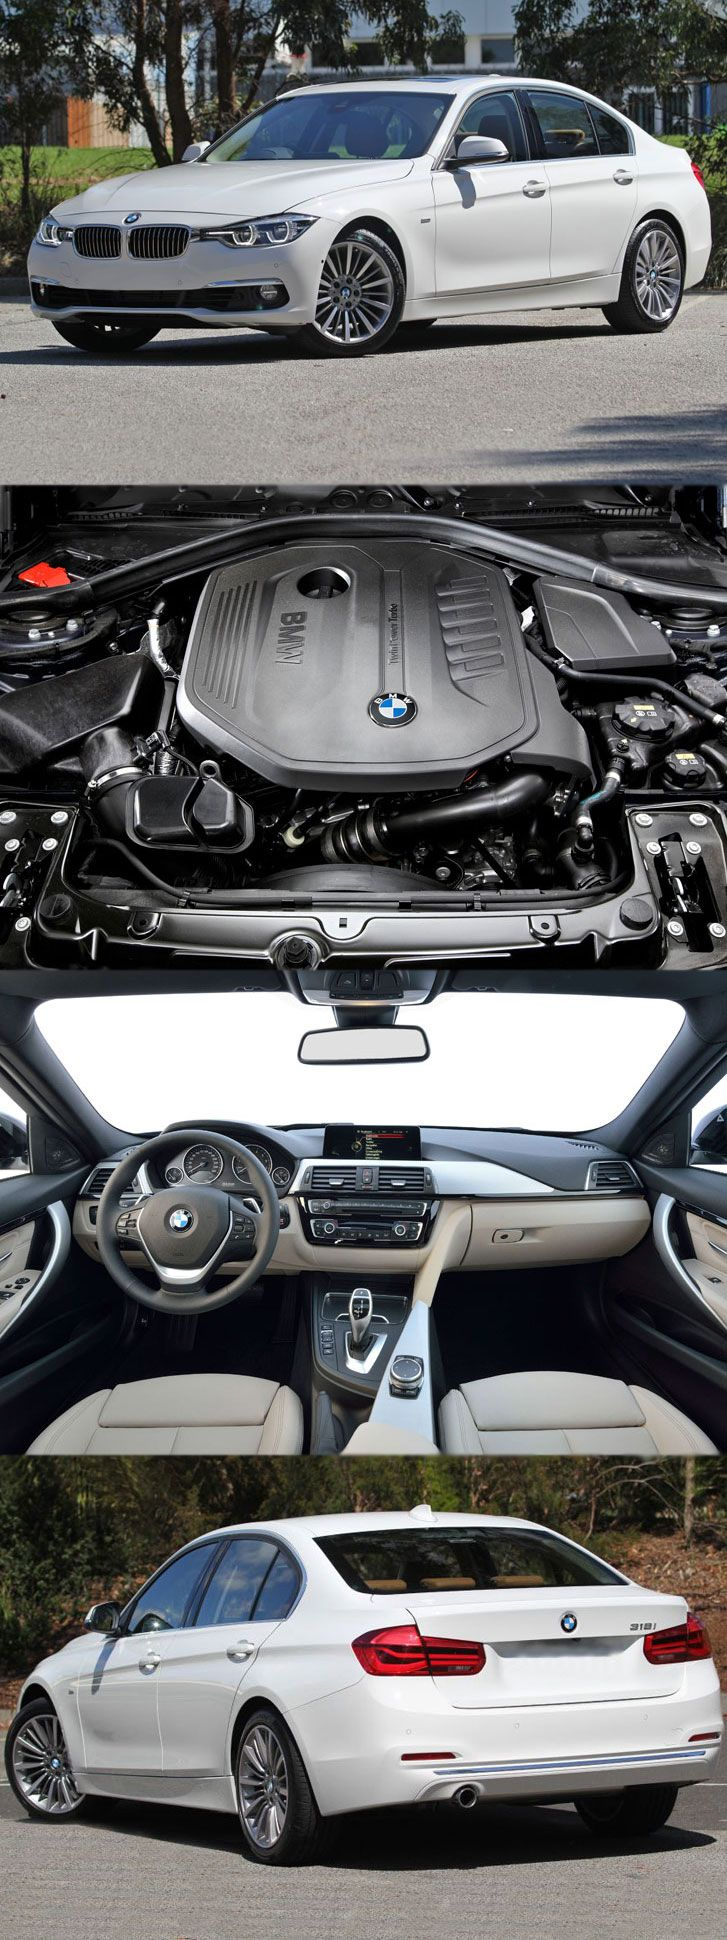 A LOW DOWN ON THE BMW 318I Get more information at: https://www.bmwengineworks.co.uk/blog/low-down-bmw-318i/